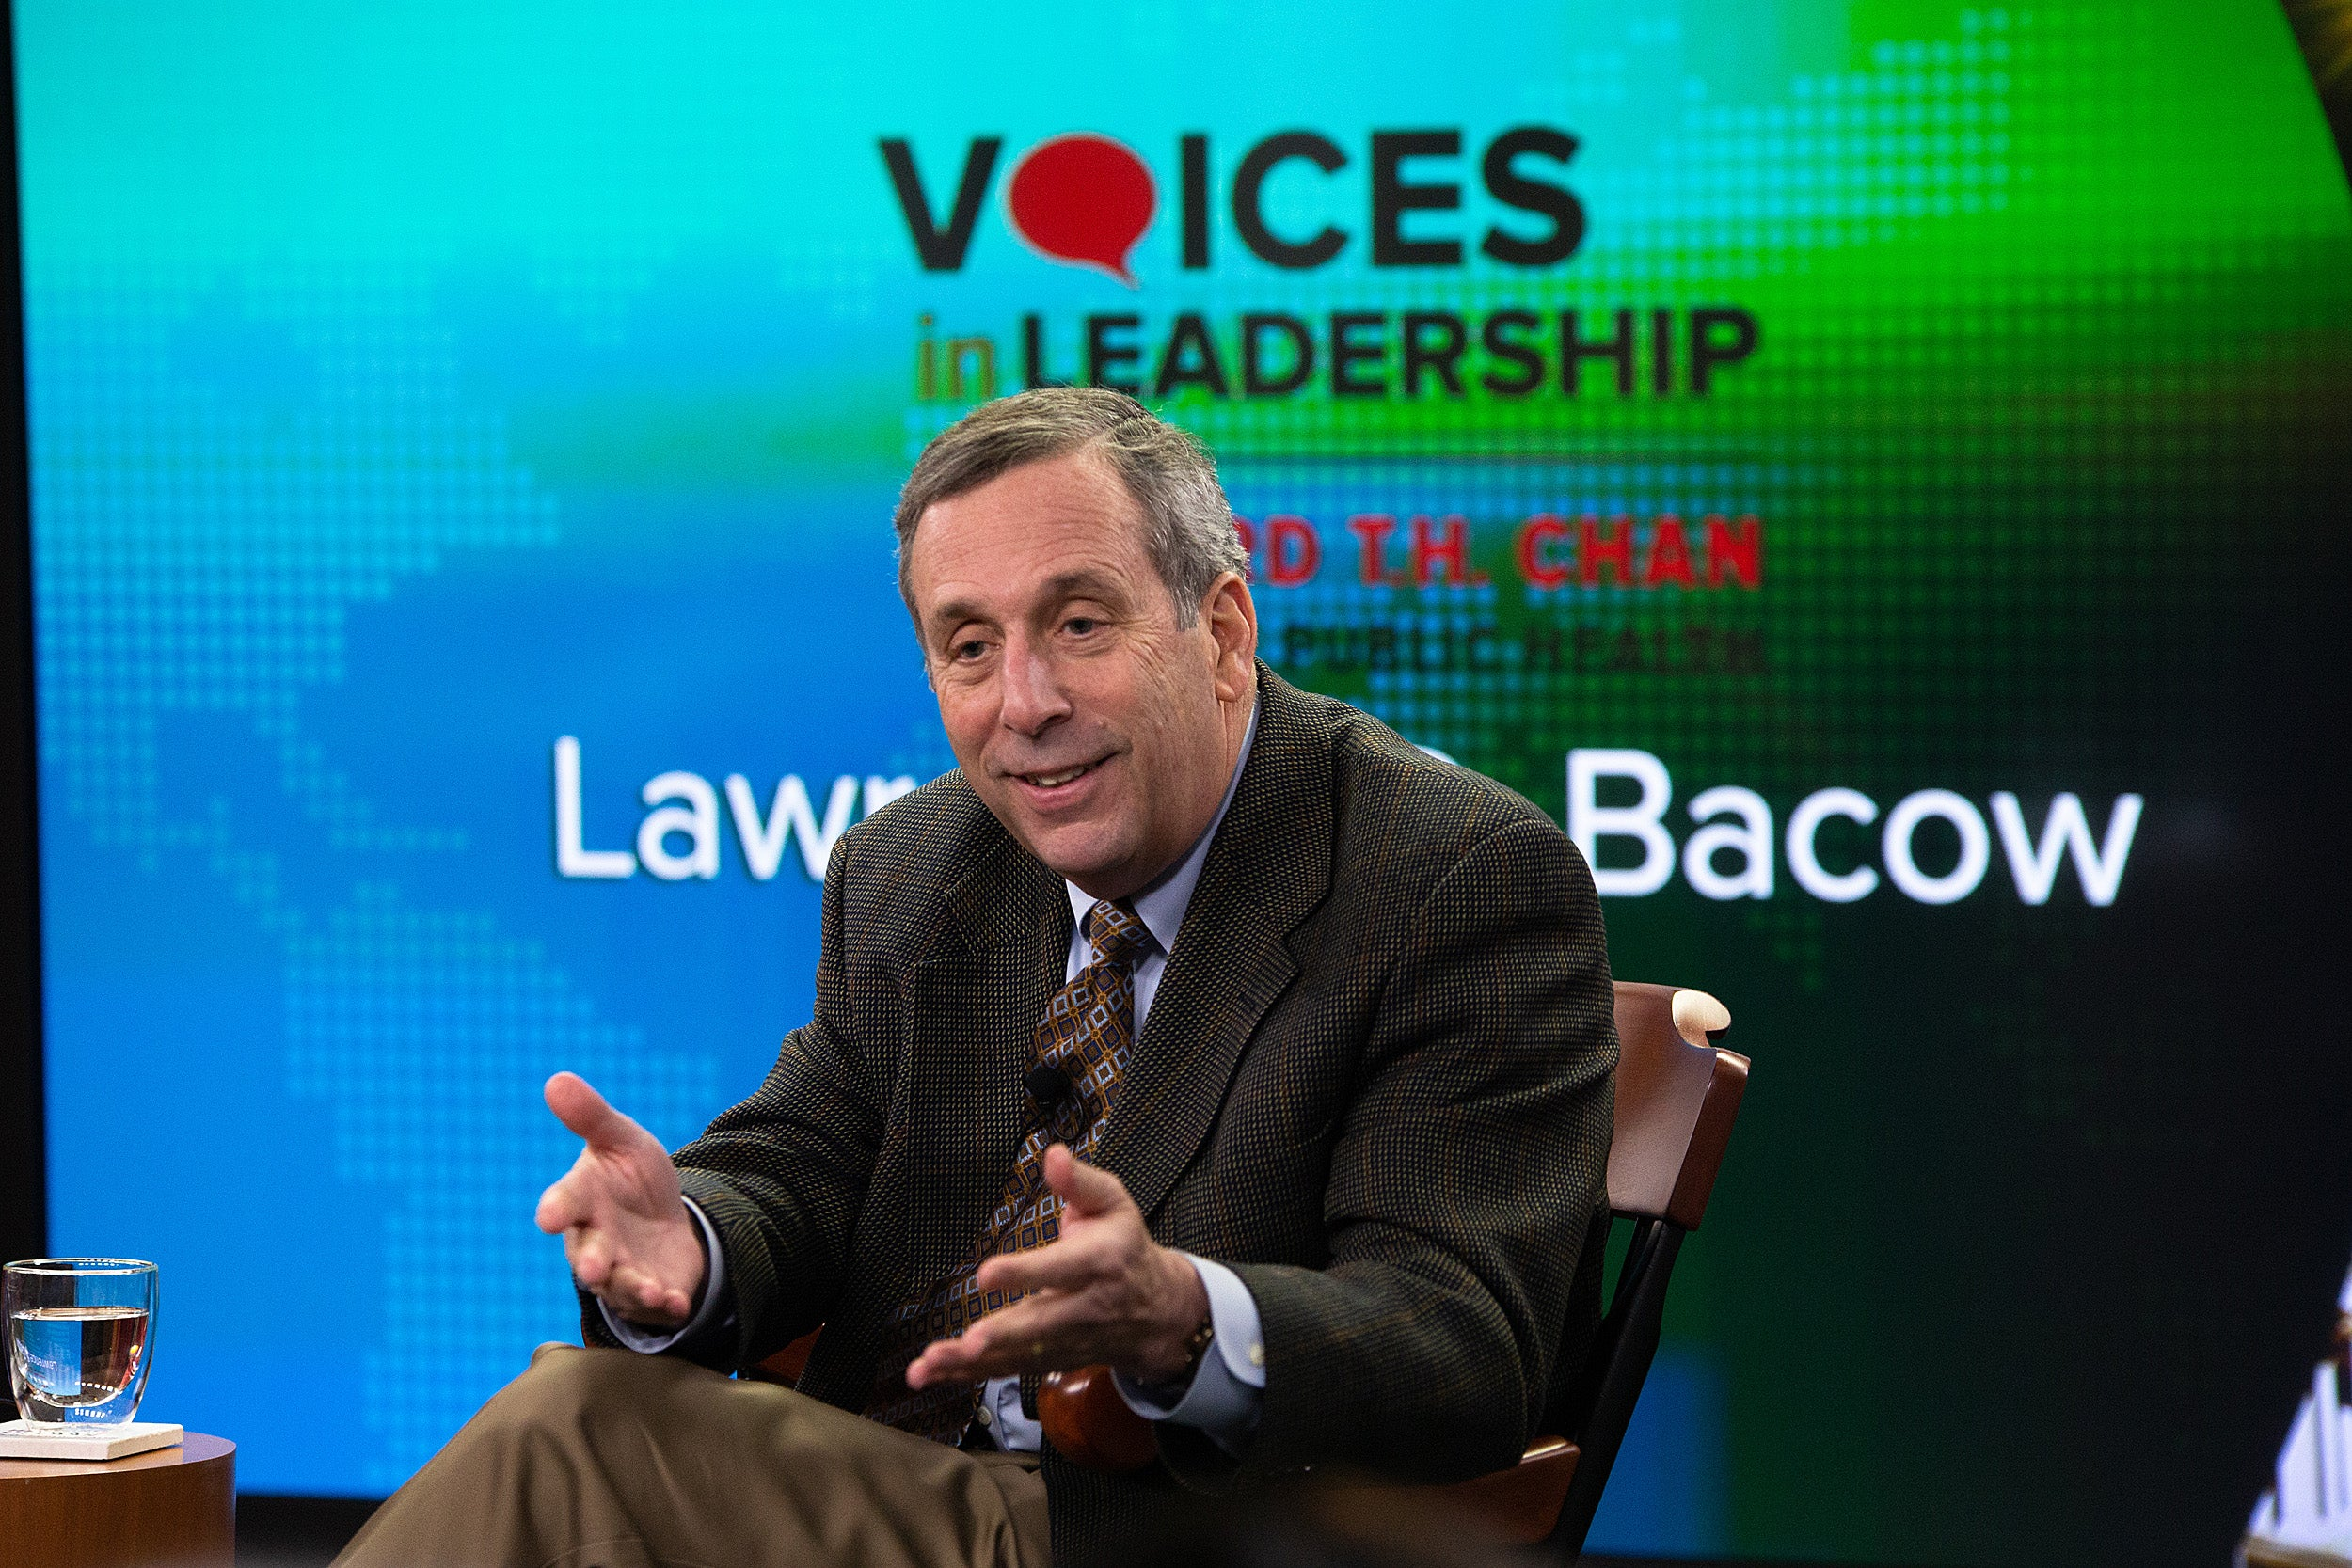 Larry Bacow